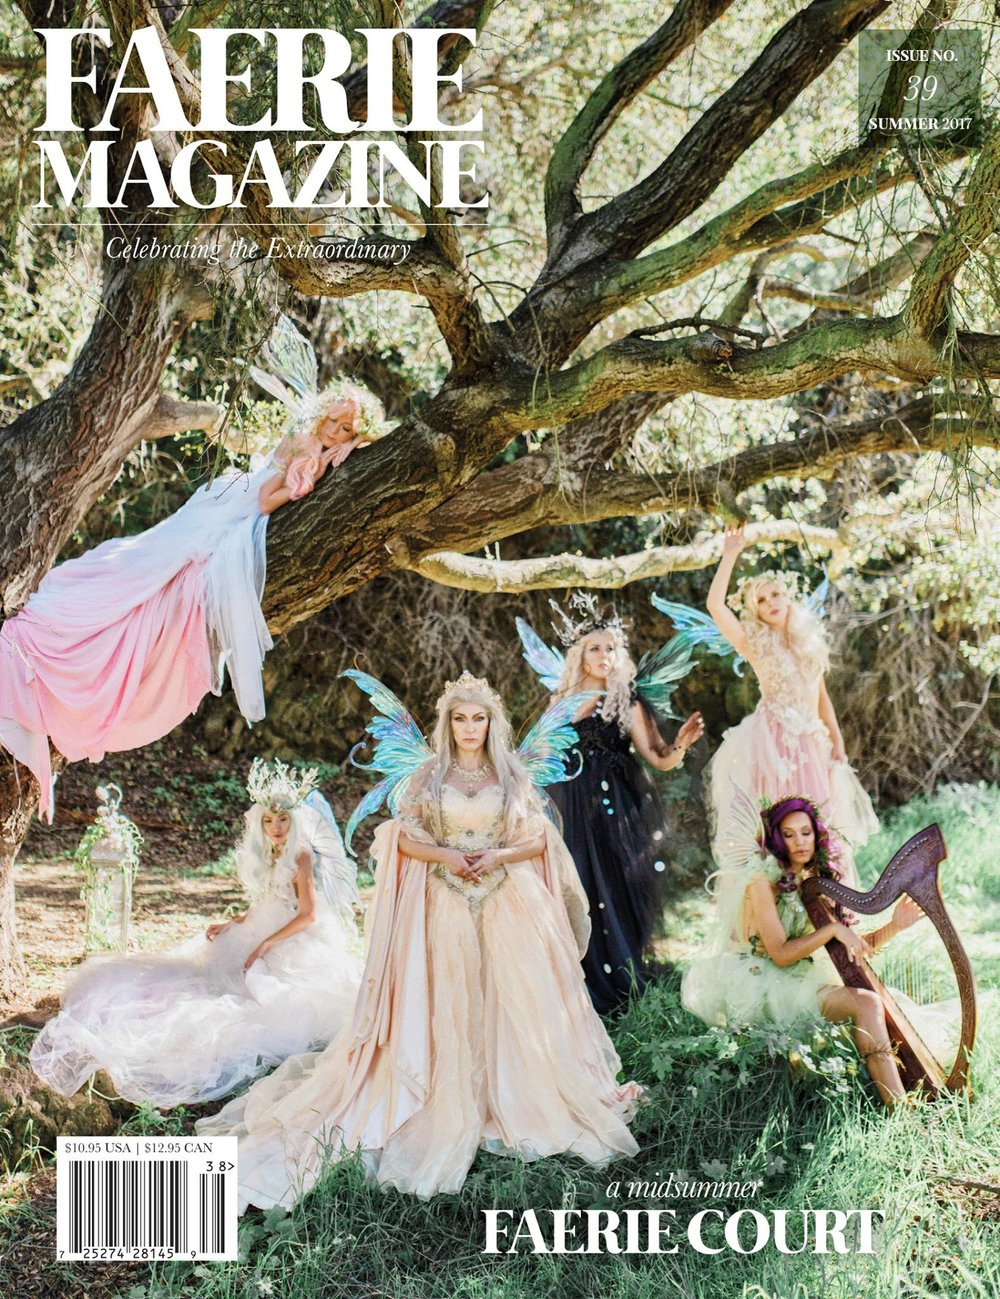 Faerie Magazine Summer Issue Cover